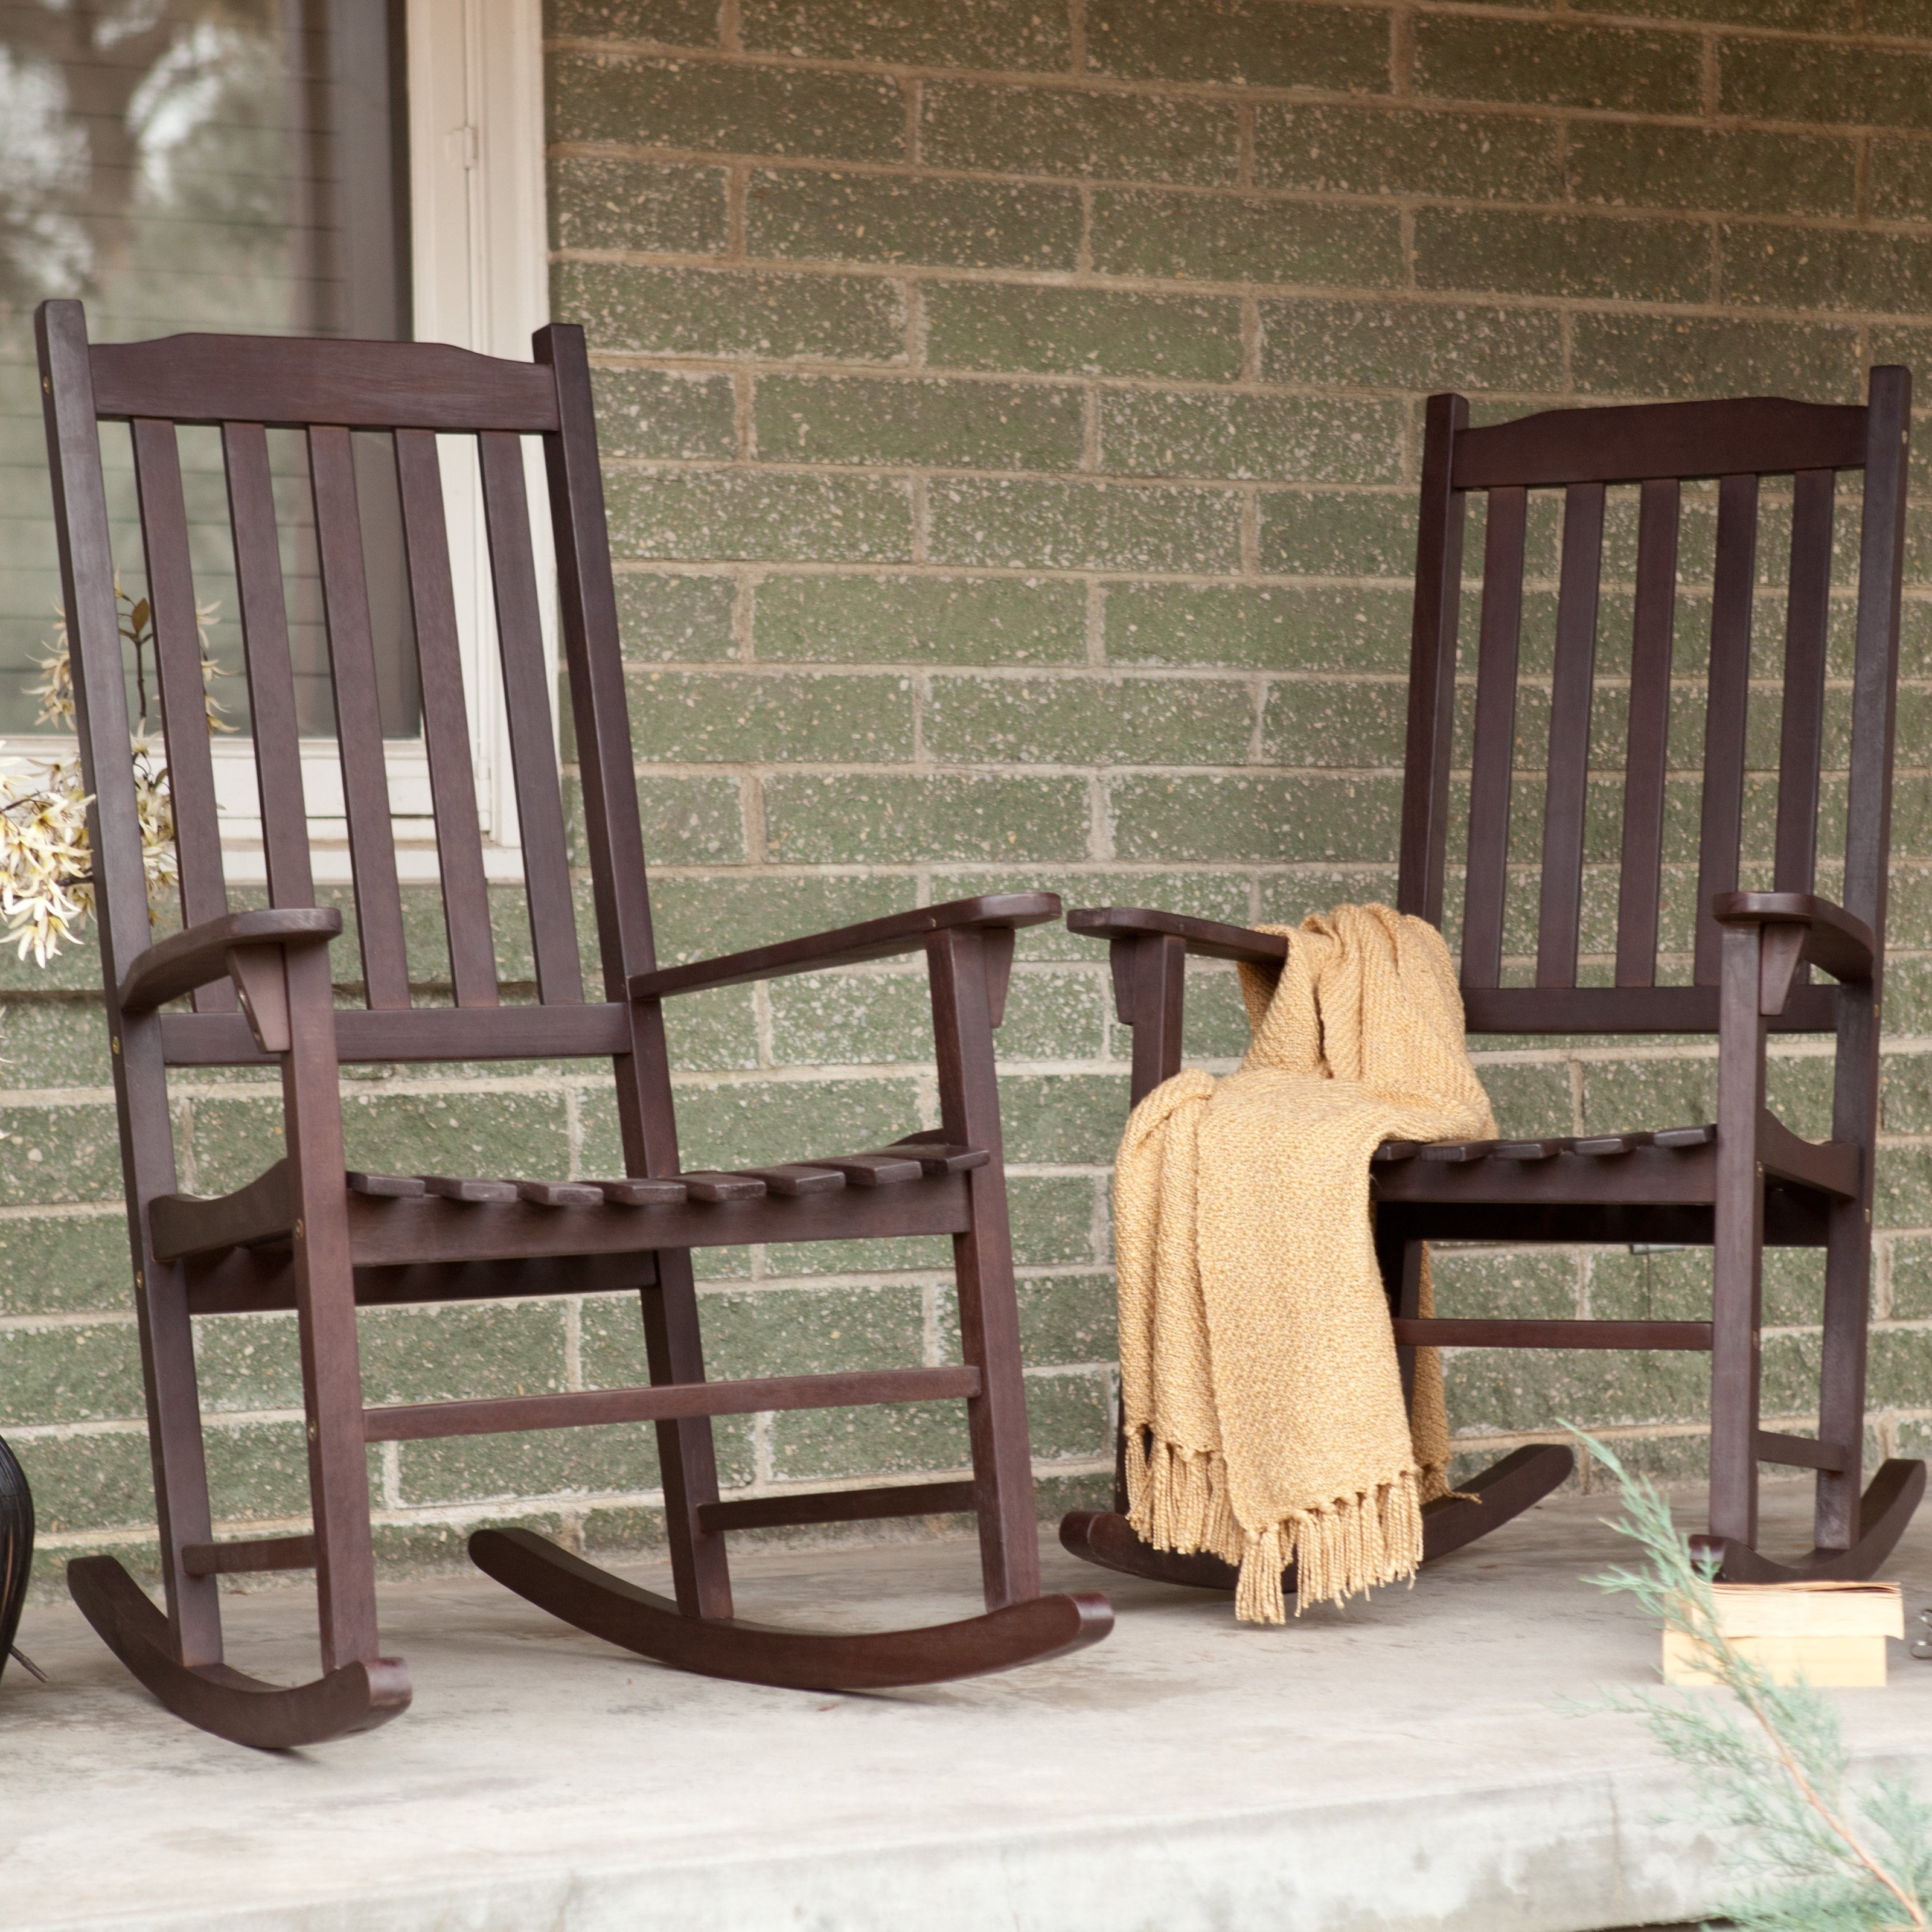 Outdoor Rocking Chairs With Favorite How To Choose Comfortable Outdoor Rocking Chairs – Yonohomedesign (View 14 of 20)